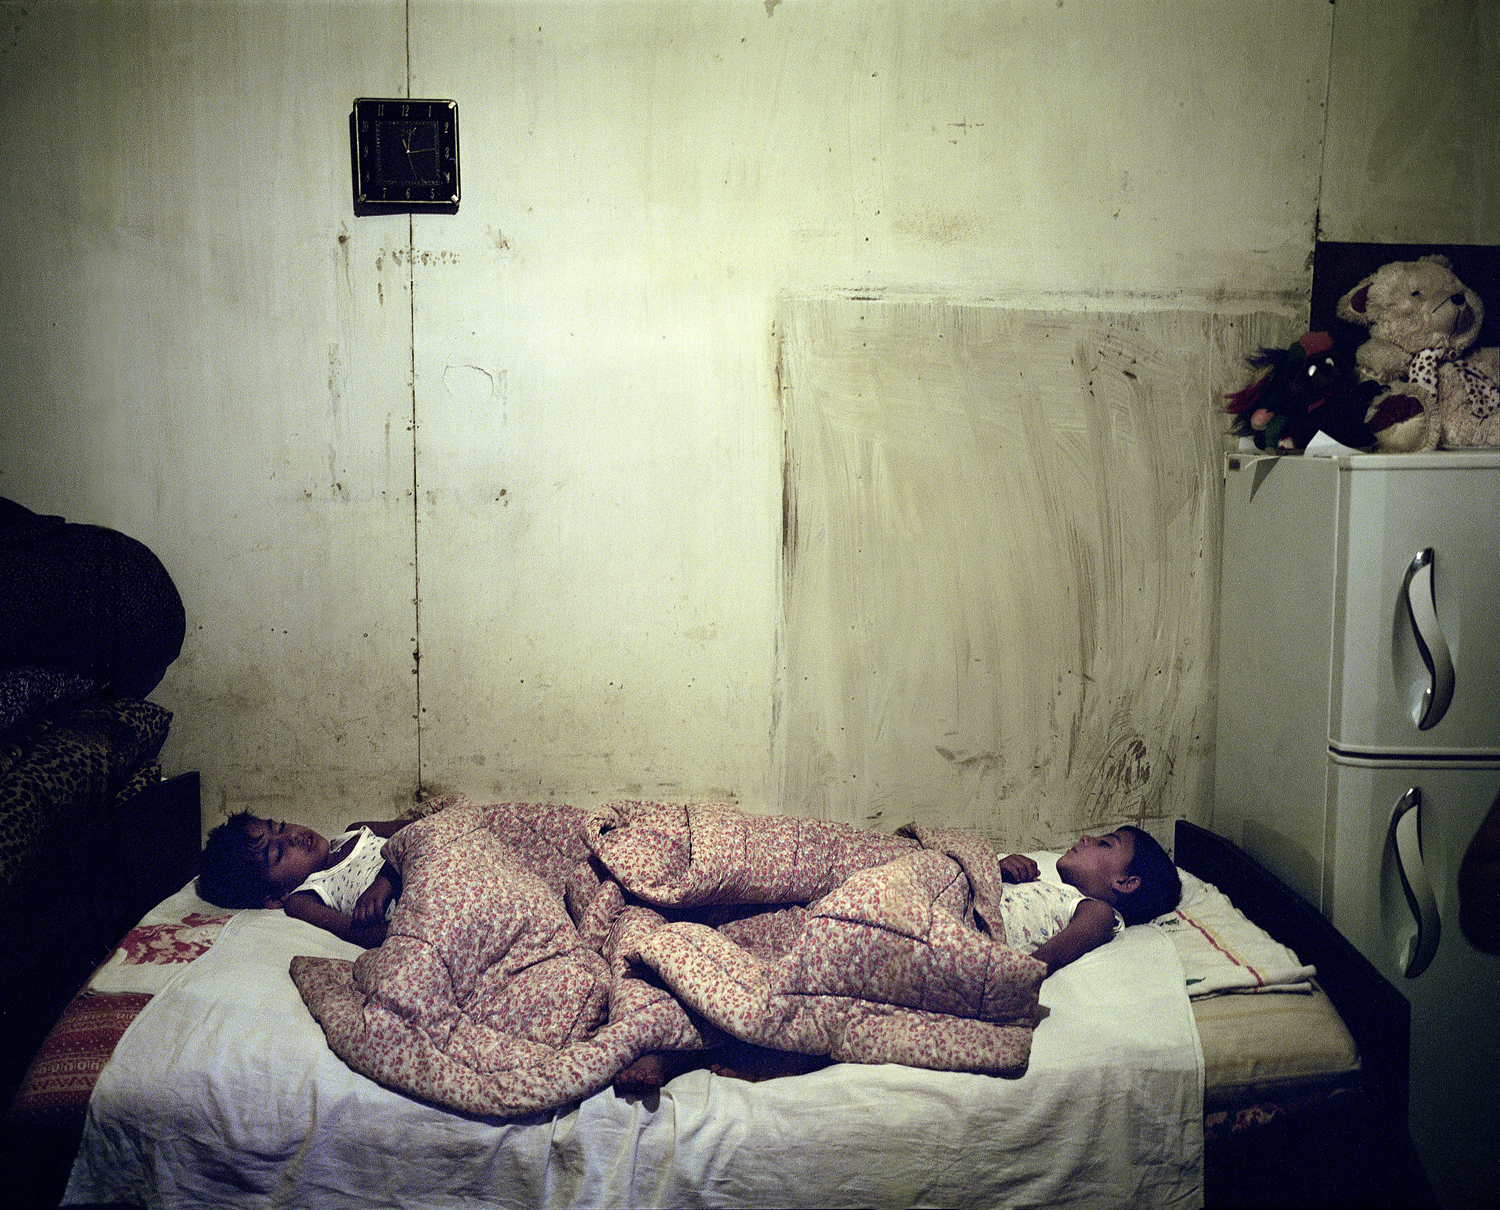 Twins sleeping in Vank.  Despite poverty, it is important to have children, and the government supports young families to help increase the population.